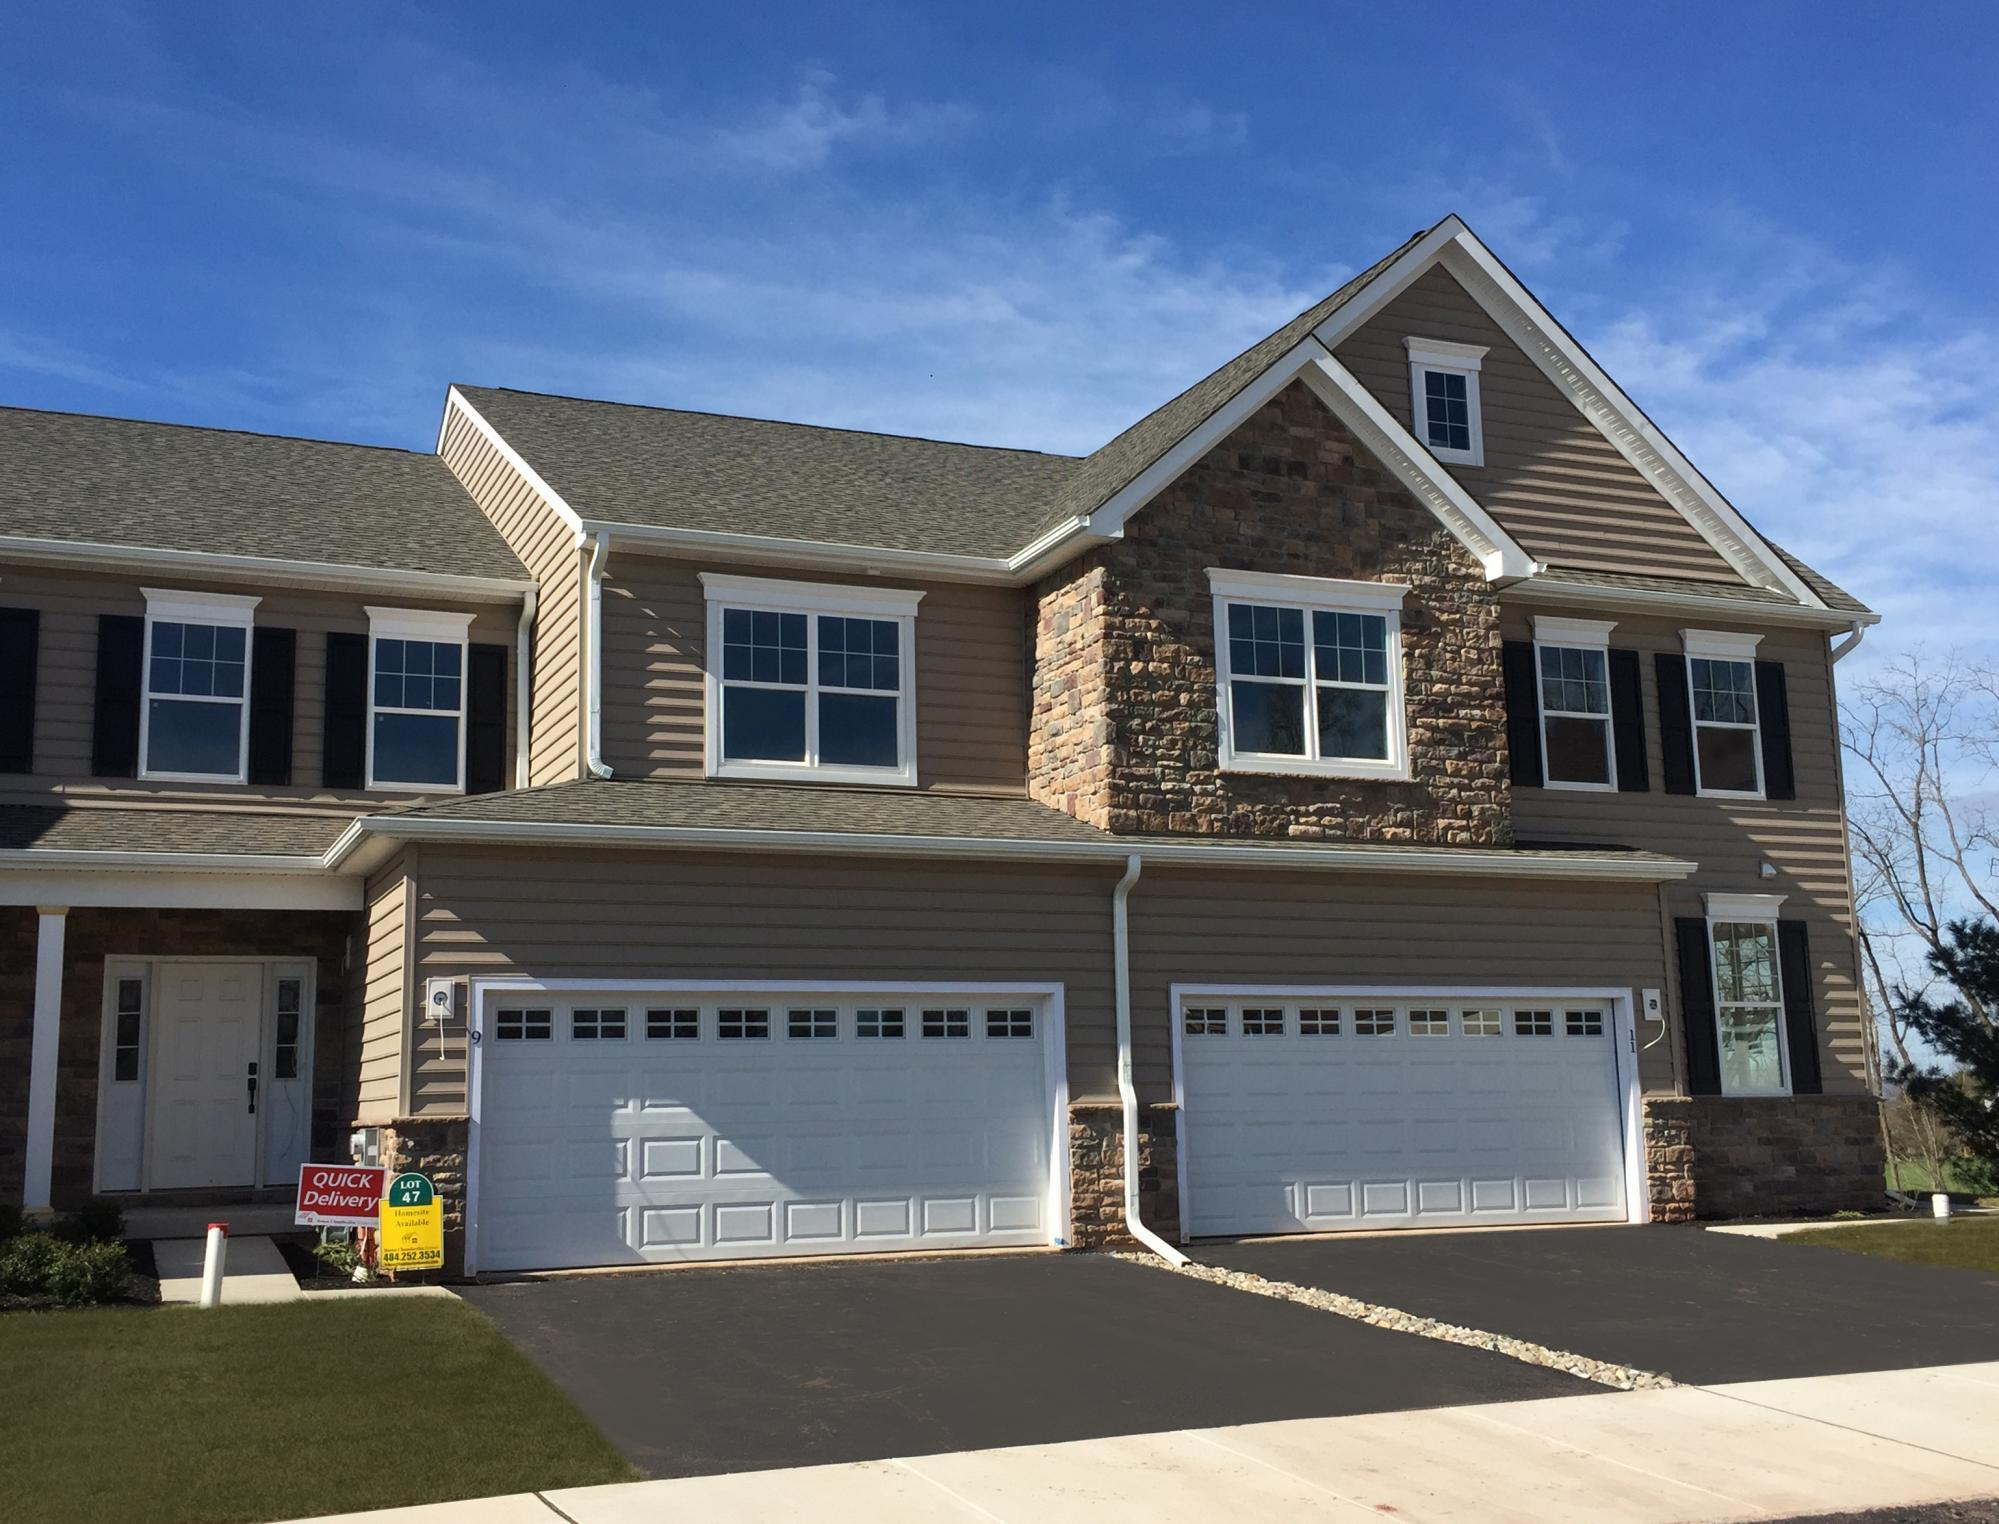 Real Estate at Lot #17 Aubrey Lane, Royersford in Montgomery County, PA 19468